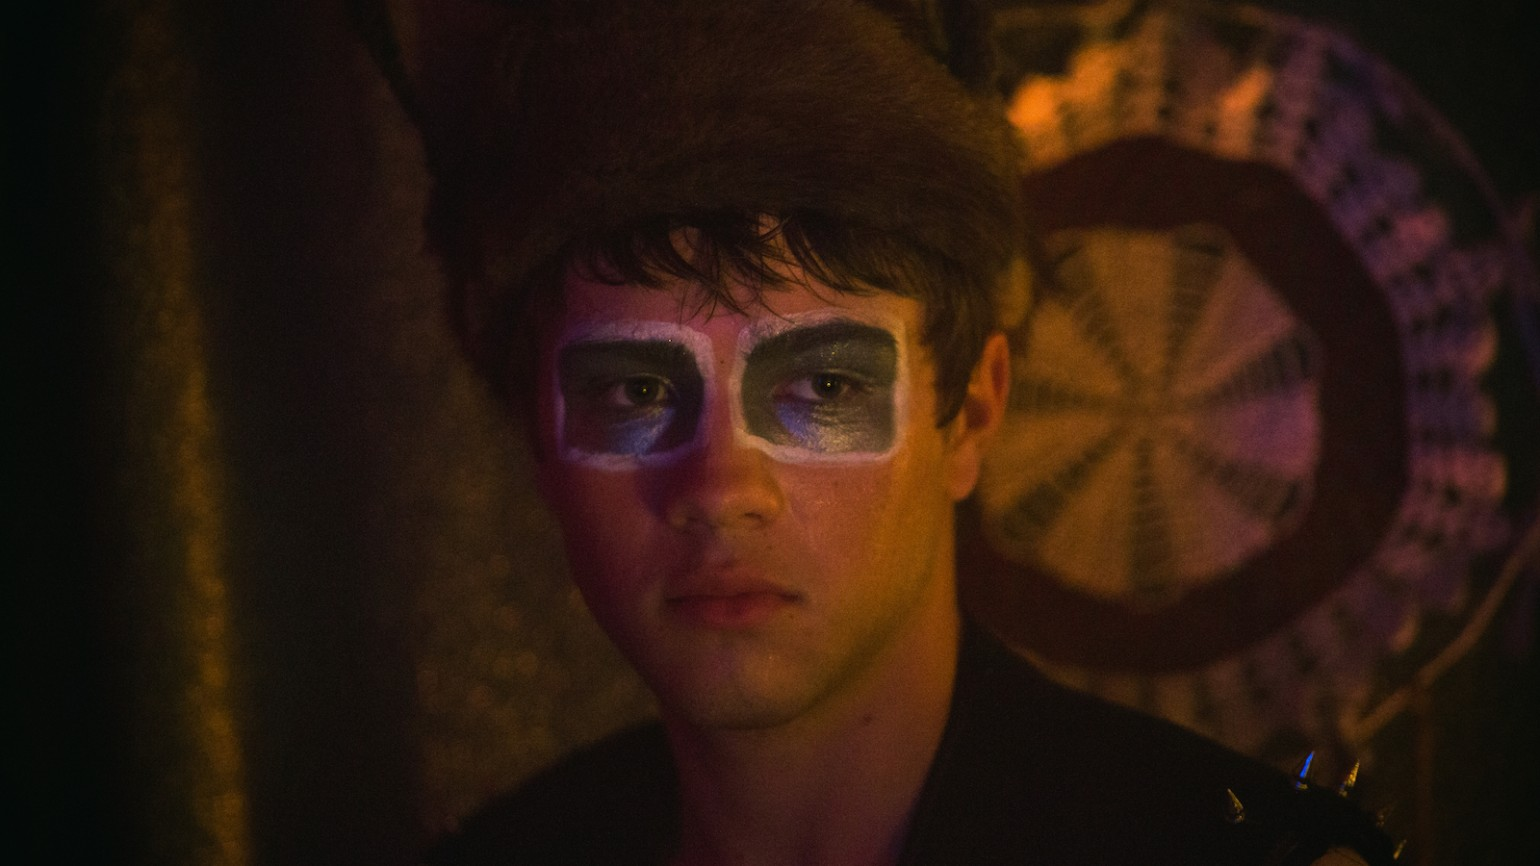 Oscar (Connor Jessup) in costume at Wilder's house party.